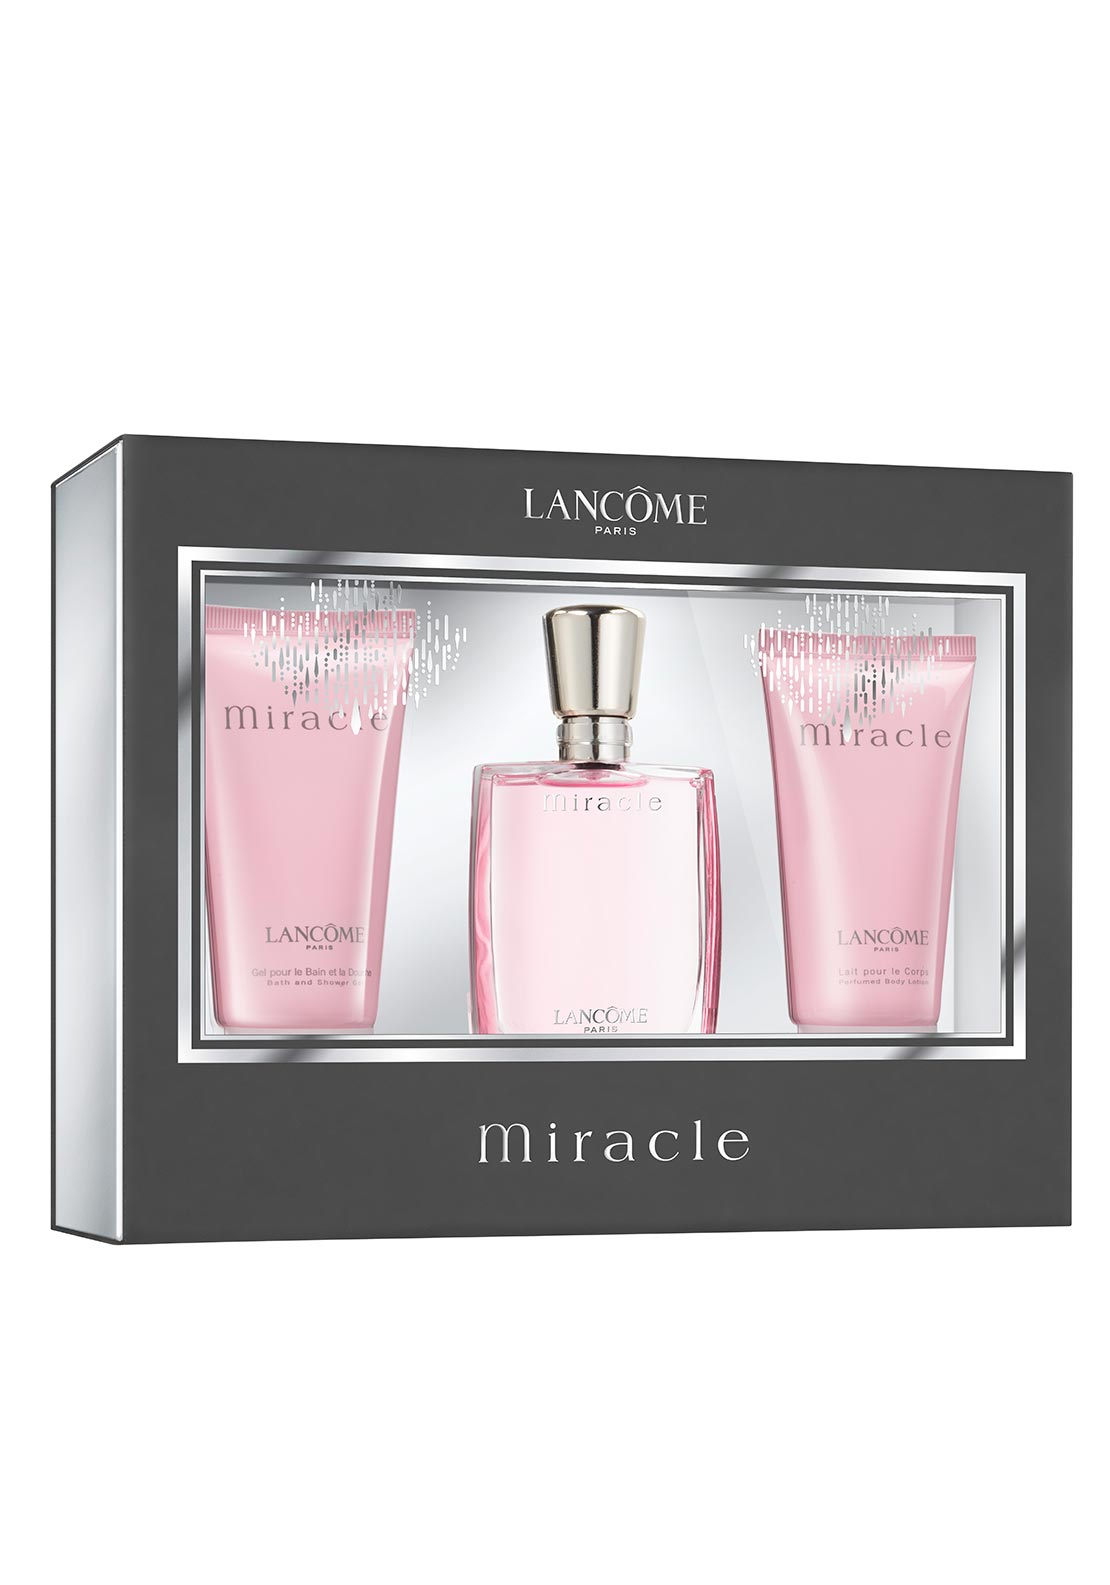 Lancome Womens Miracle Eau de Parfum 30ml Gift Set